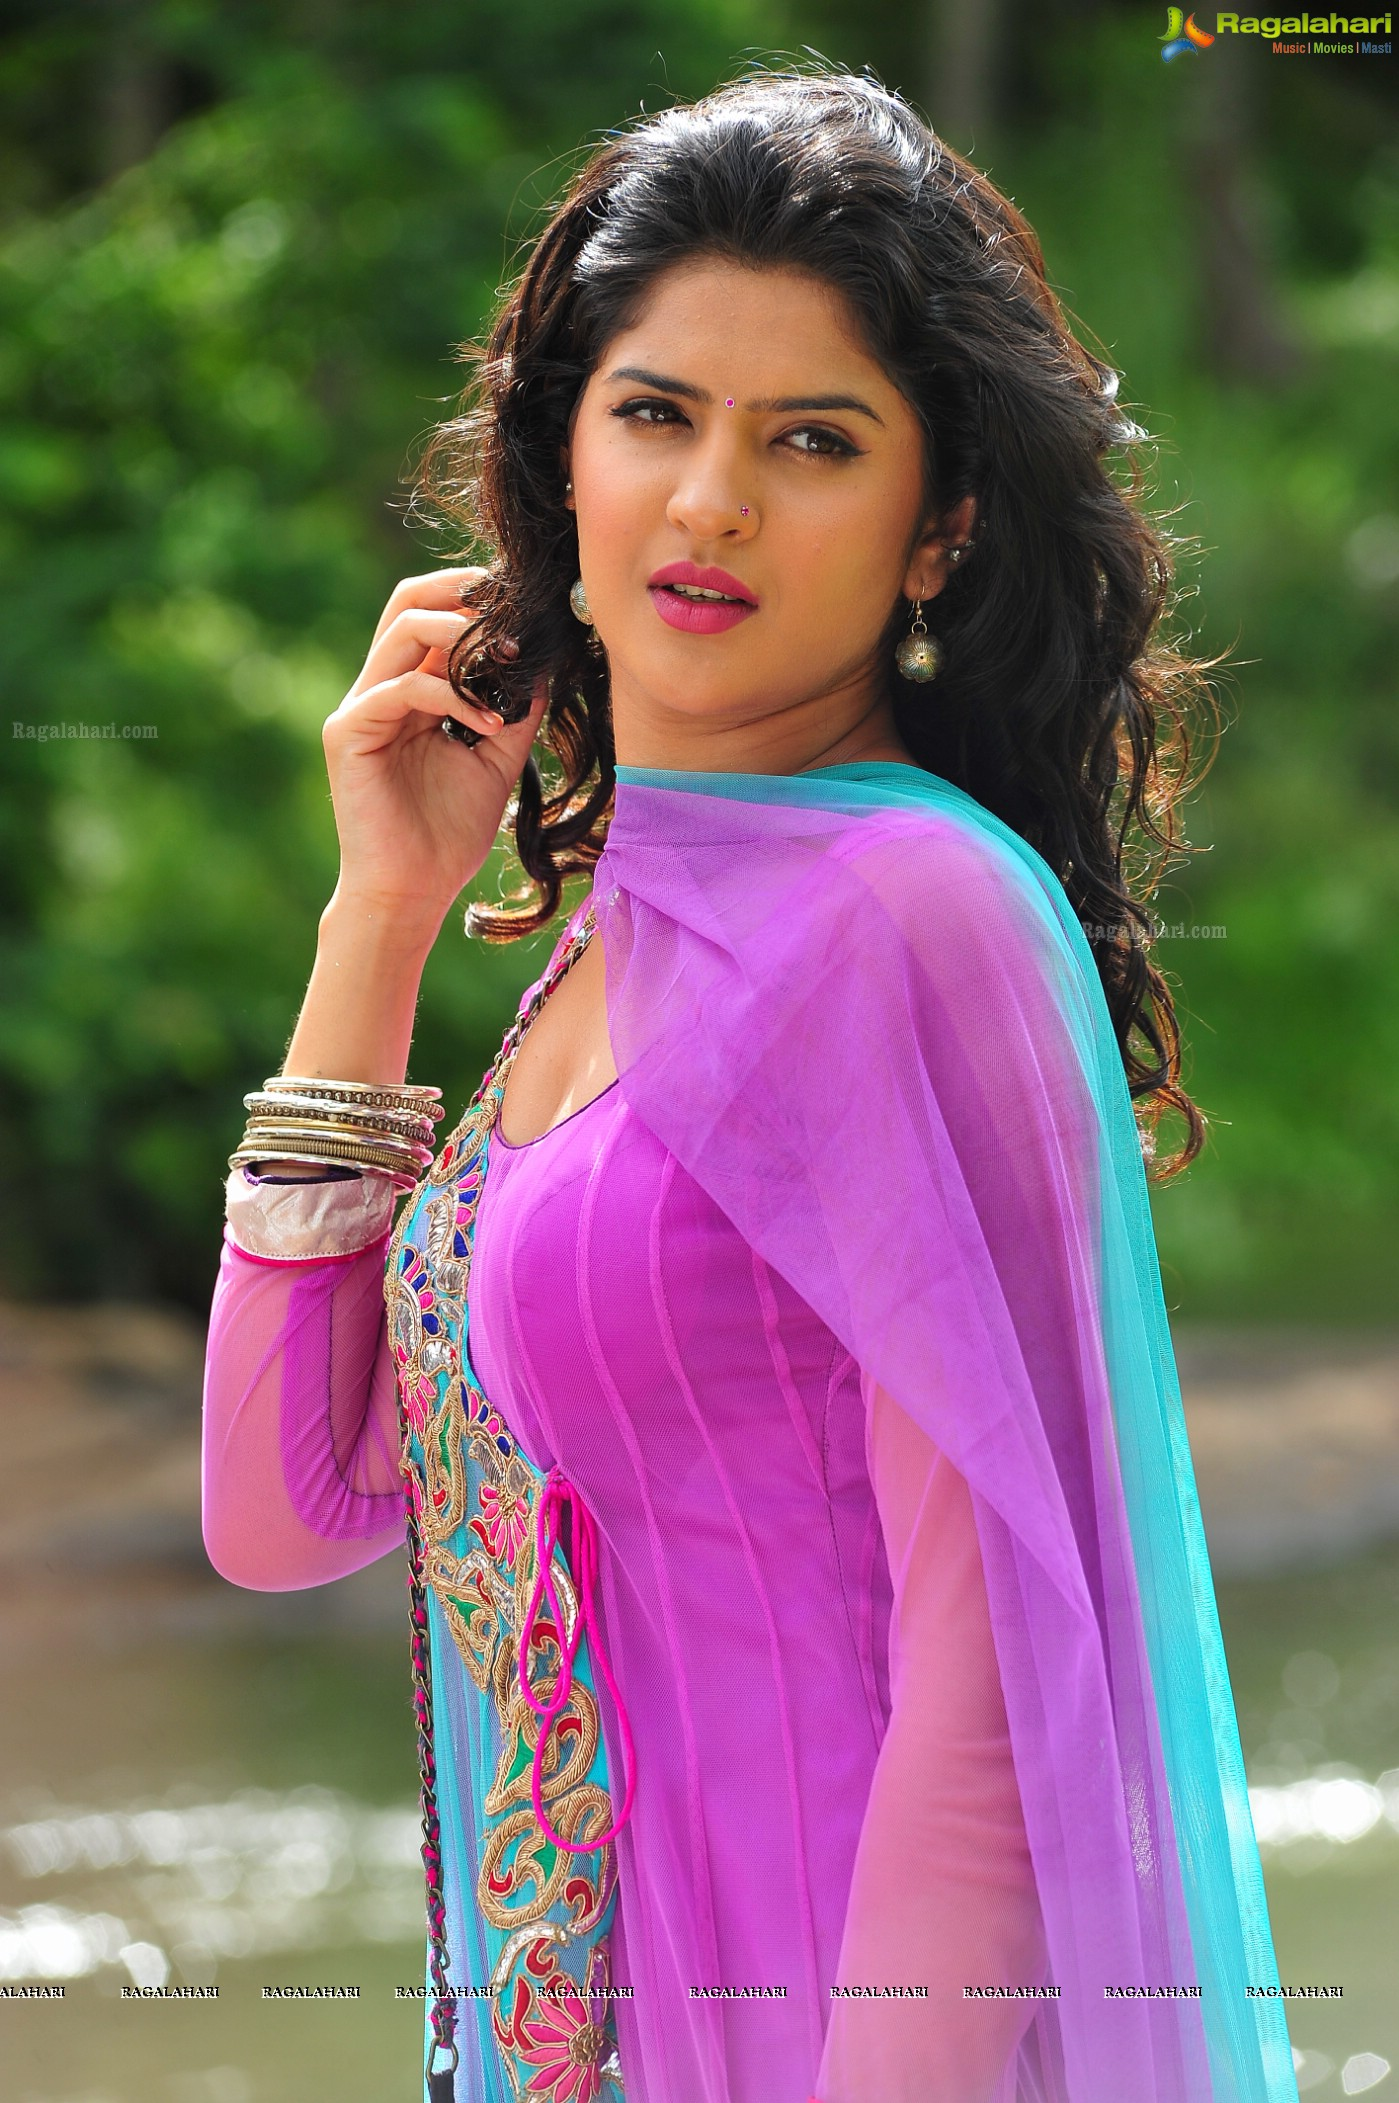 deeksha seth (posters) image 30 | tollywood actor gallery,images